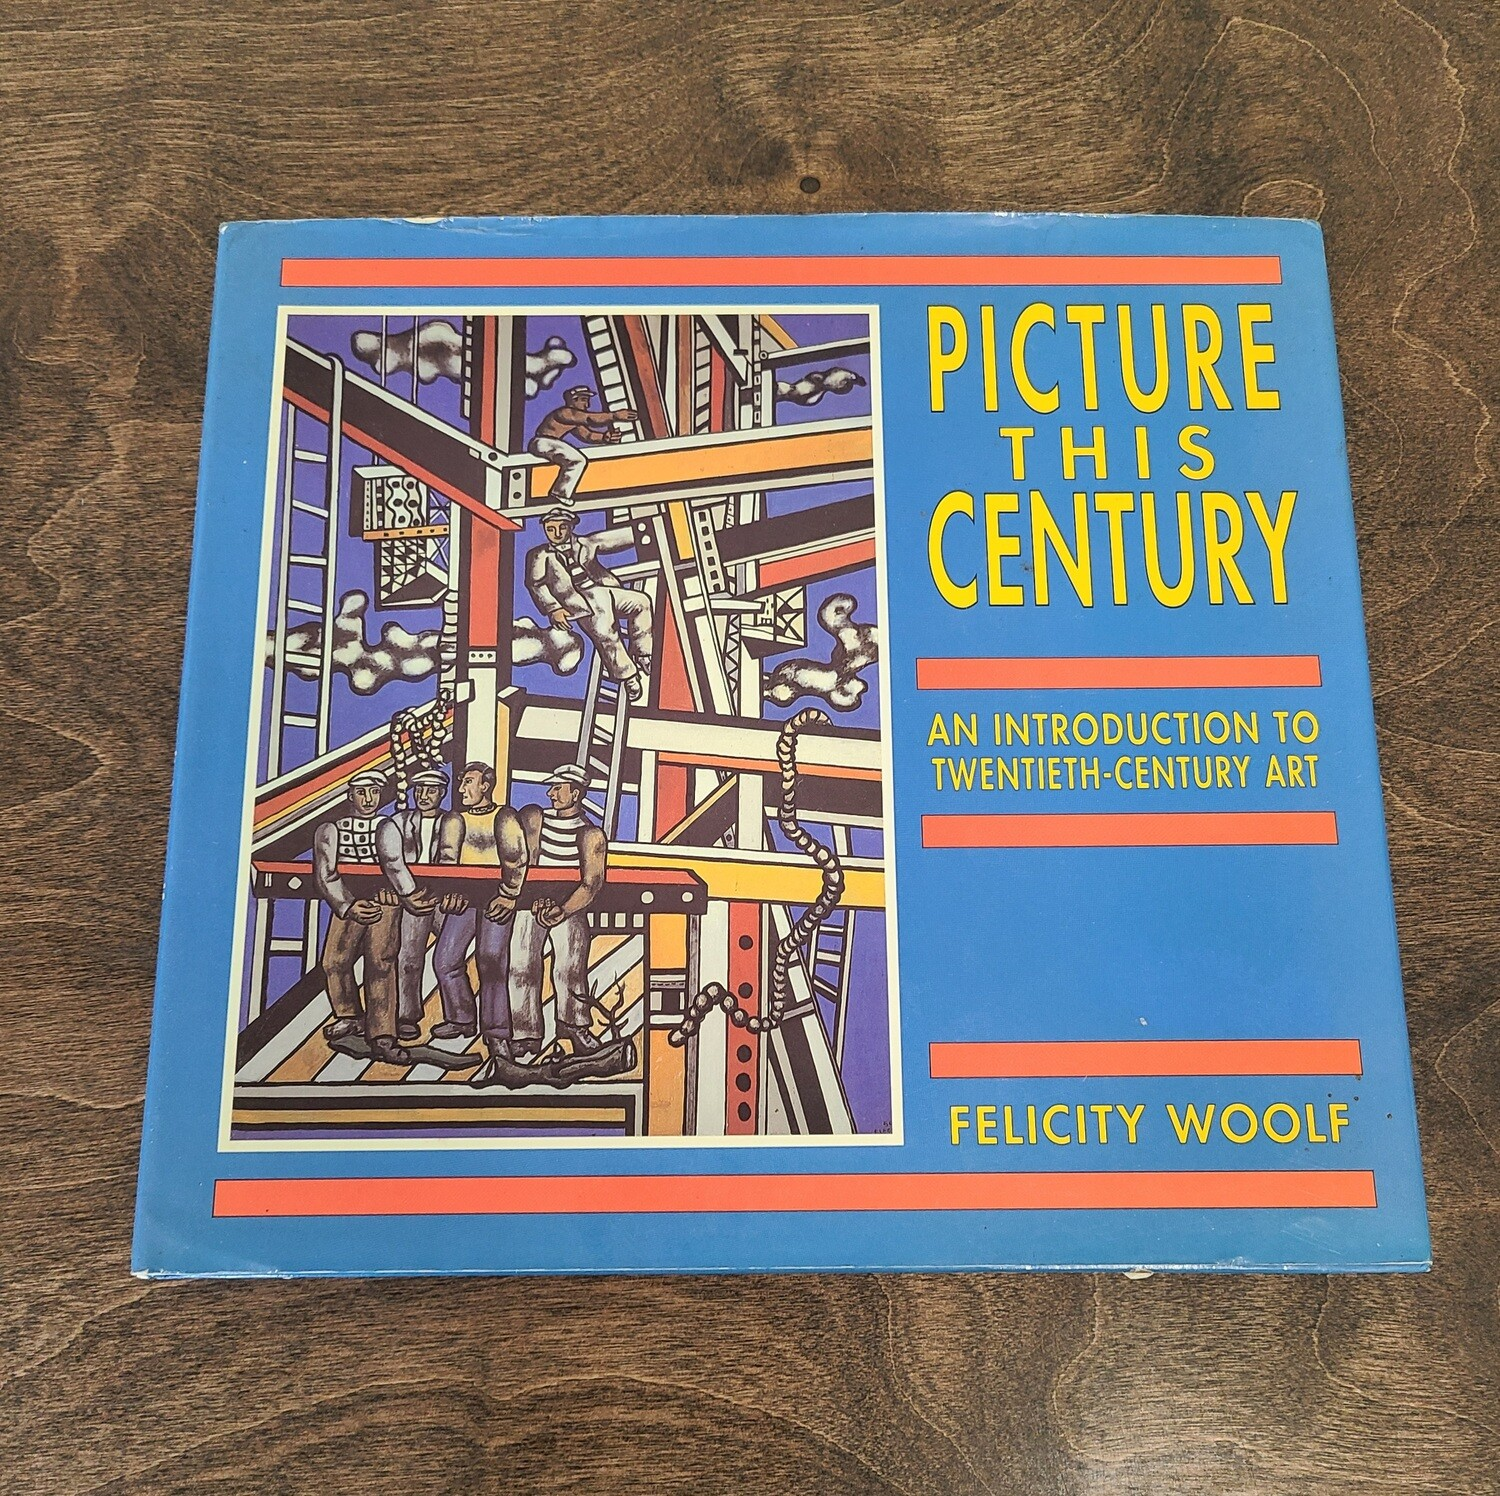 Picture This Century: An Introduction to Twentieth-Century Art by Felicity Woolf